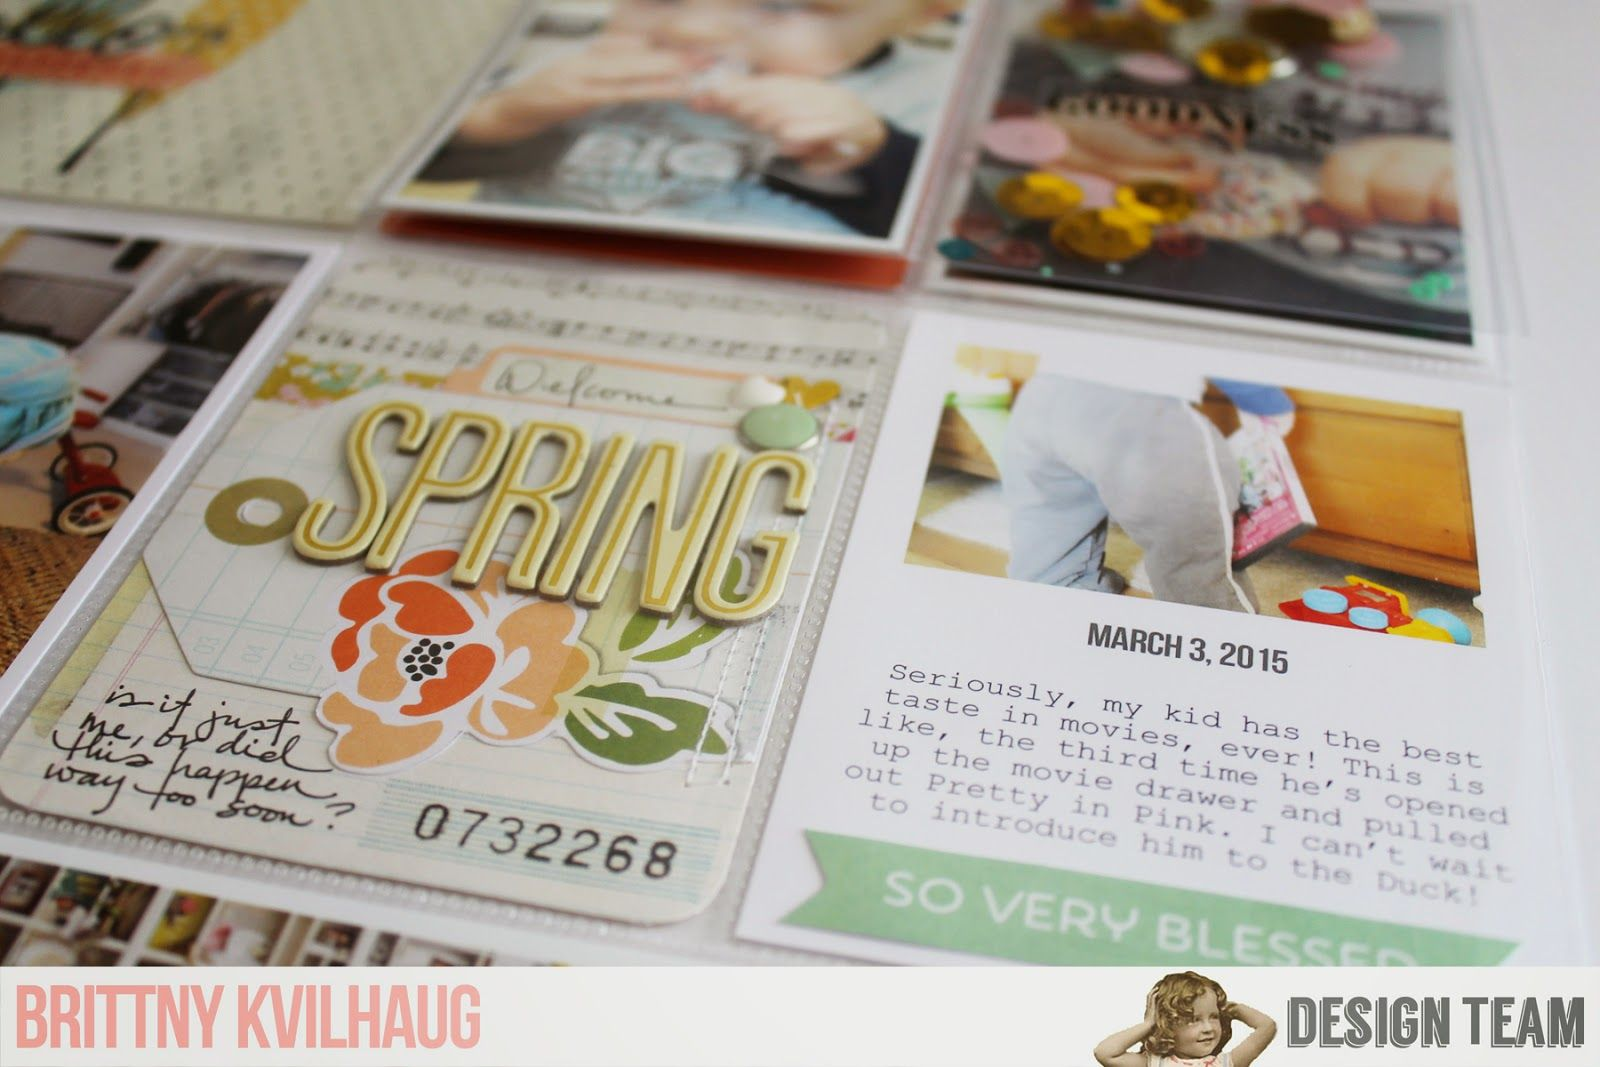 Well, we are officially in Spring, y'all! And this week on the blog, we are all going to be celebrating!     I got my new Fuse the very sam...